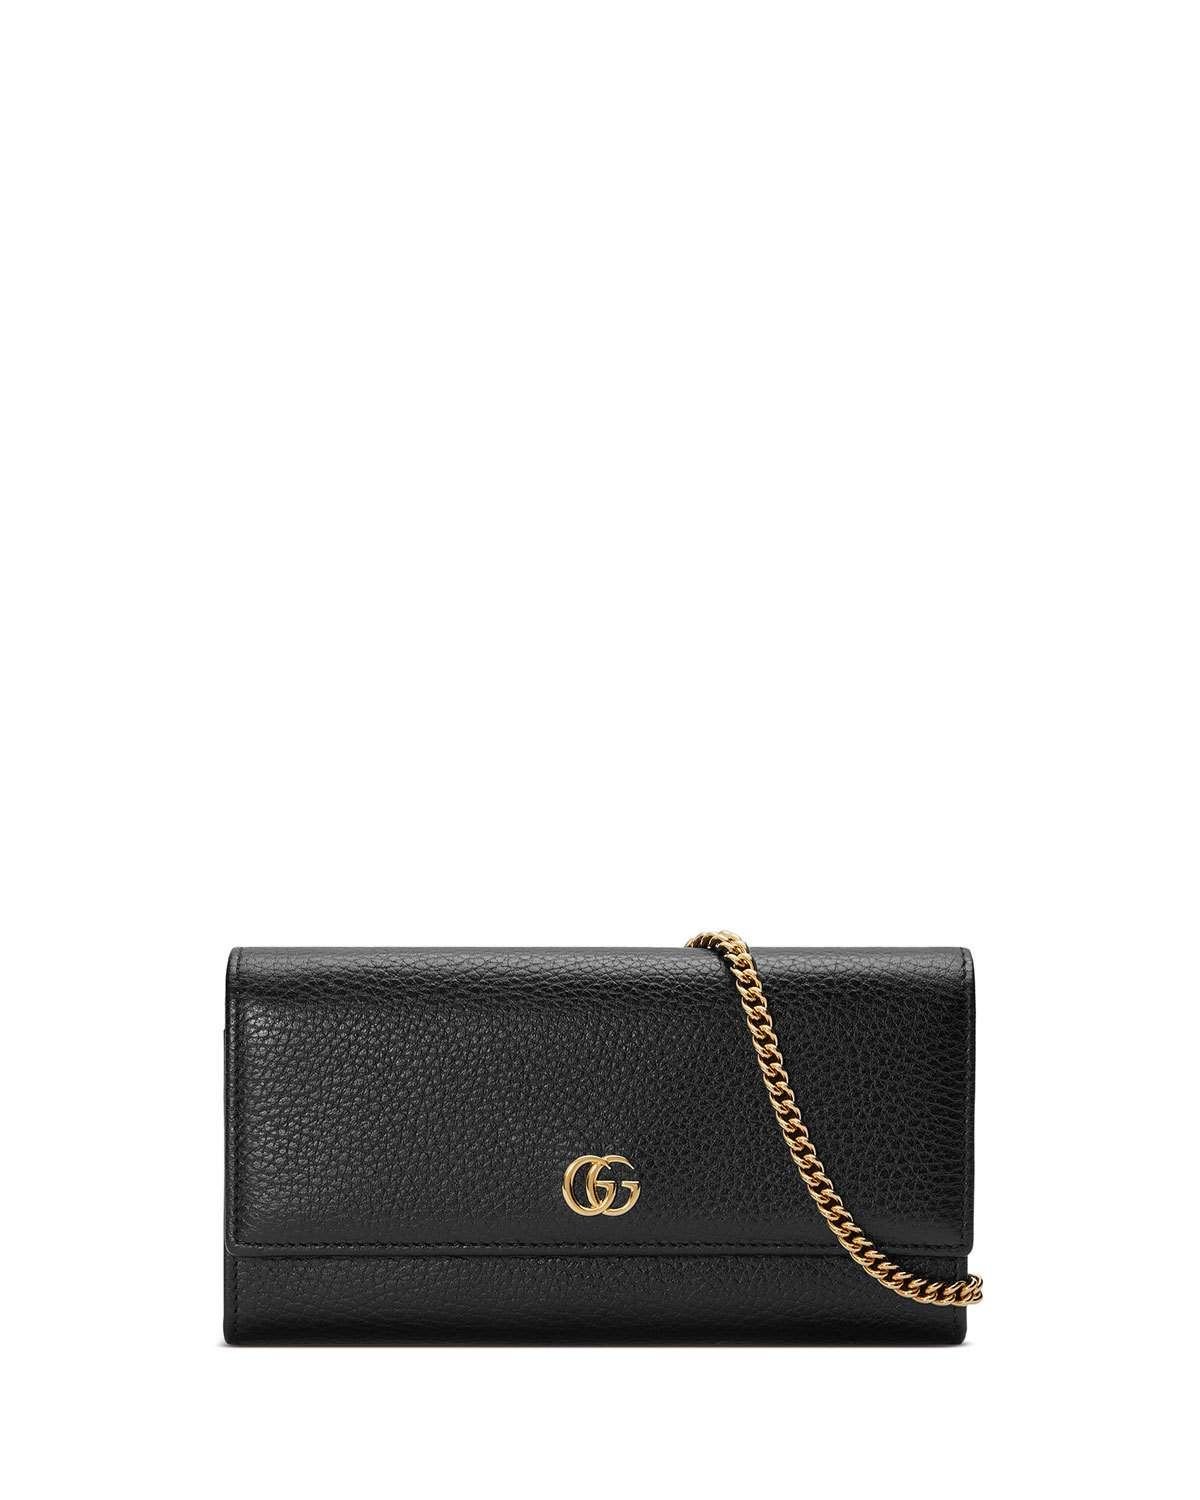 fe2da670d6 Petite Marmont GG Leather Flap Wallet on a Chain in 2019 | Lifestyle ...